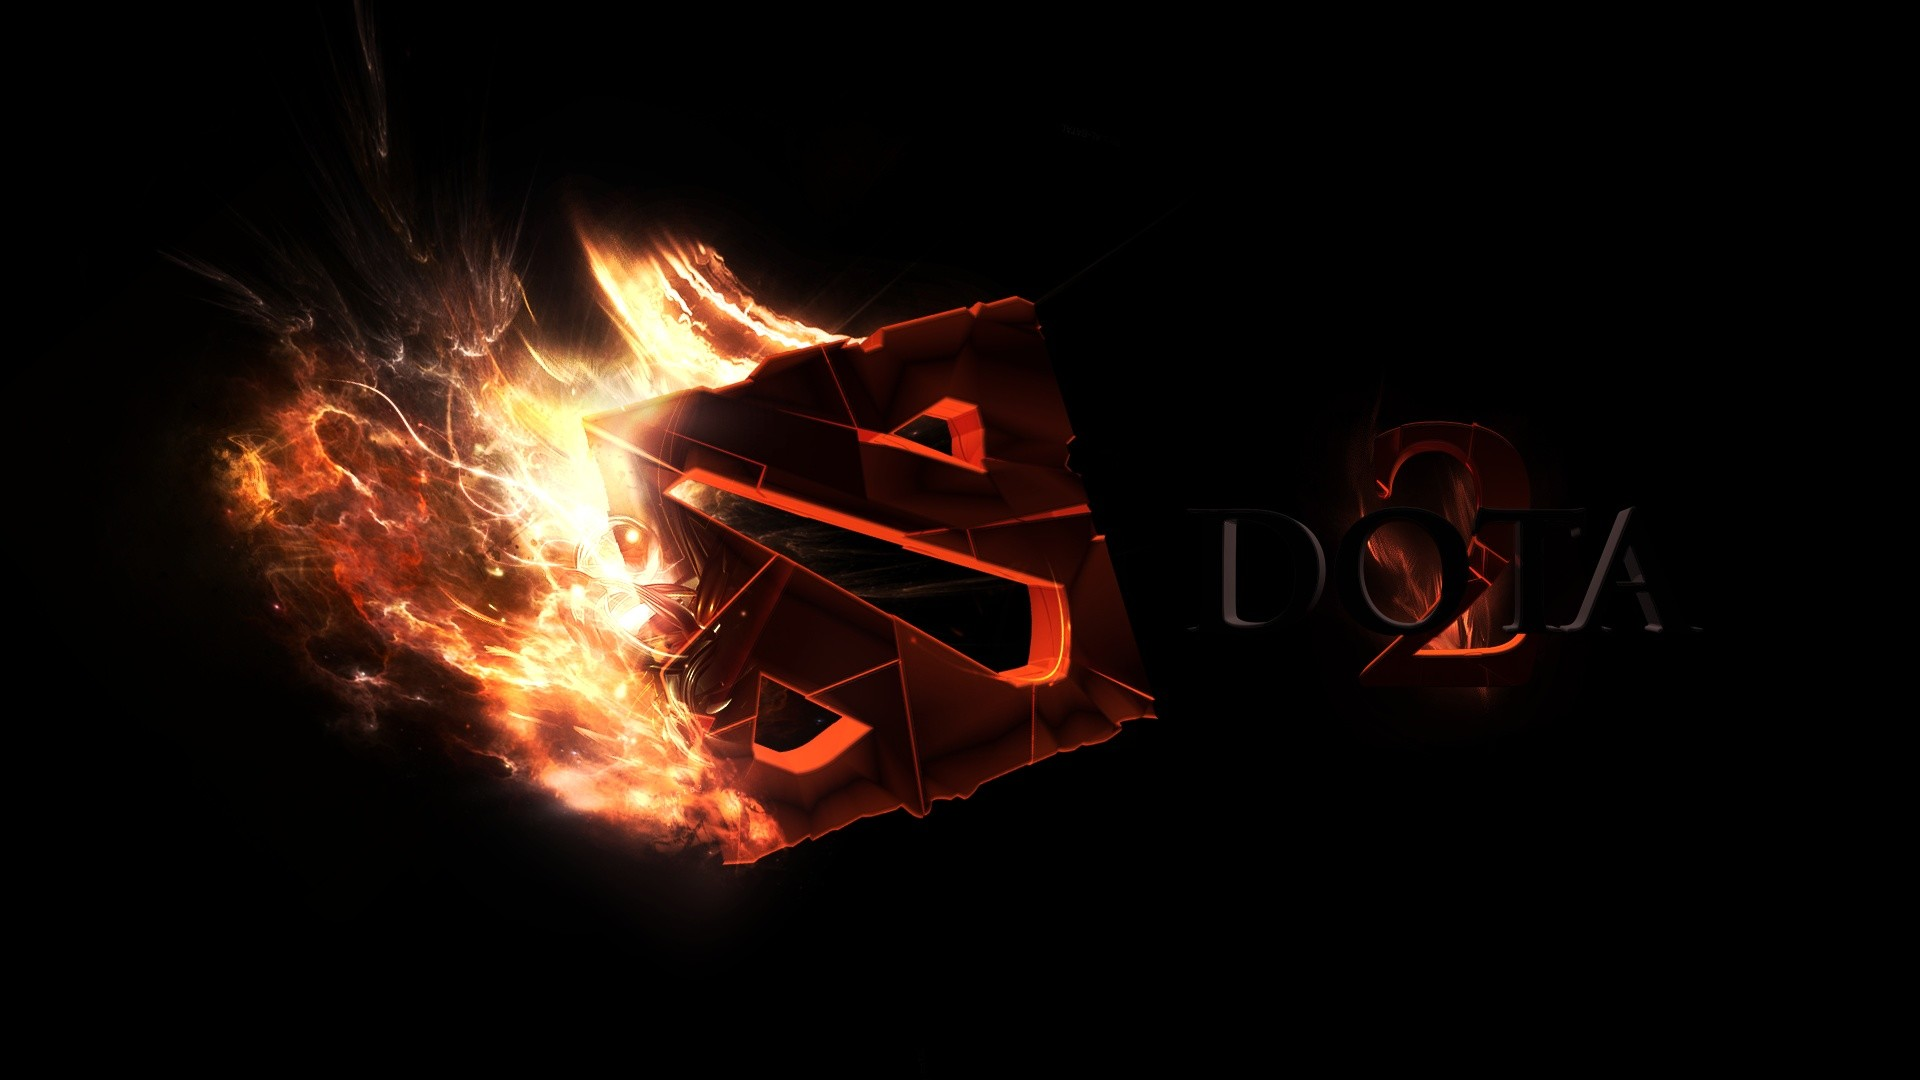 1920x1080 Preview wallpaper dota 2, art, logo, fire